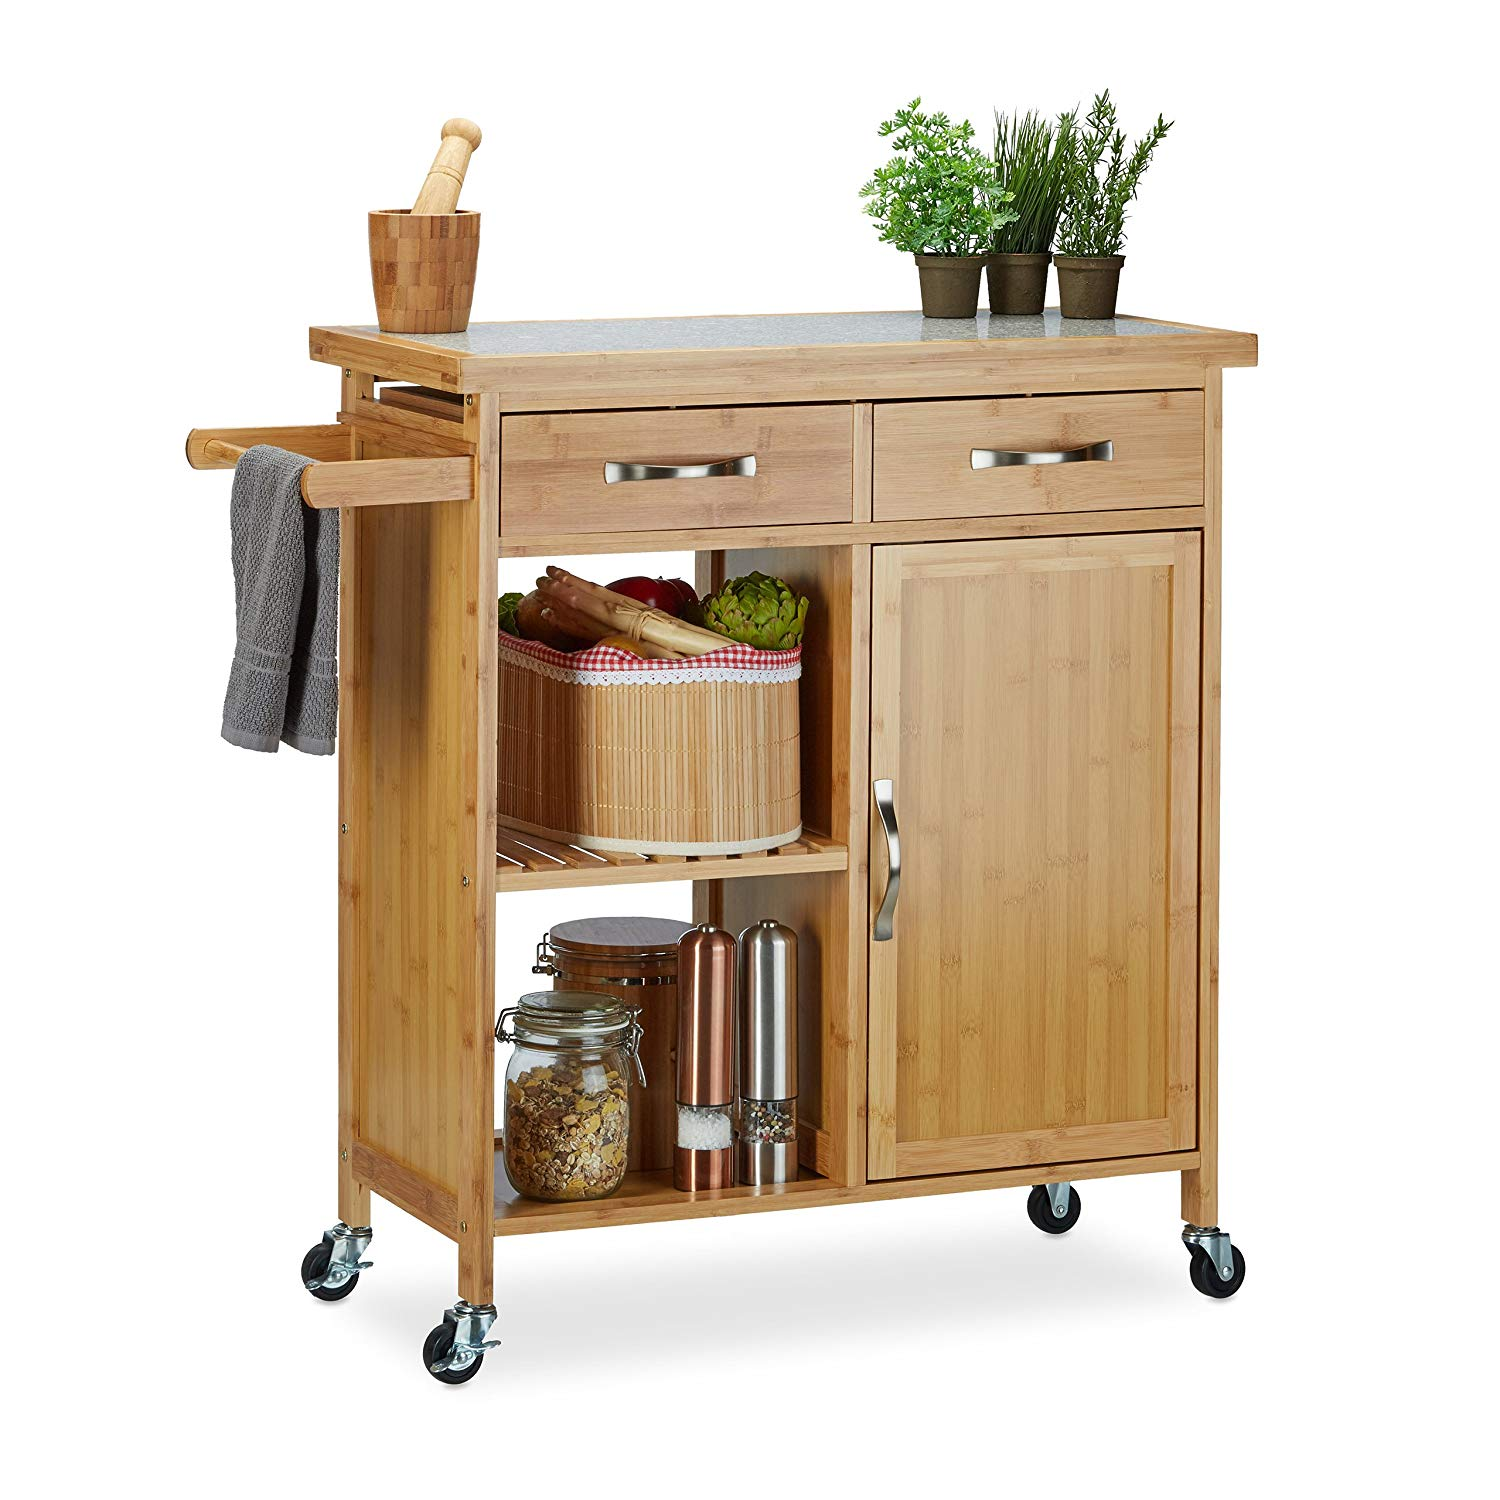 Factory Direct home high capacity wooden cart